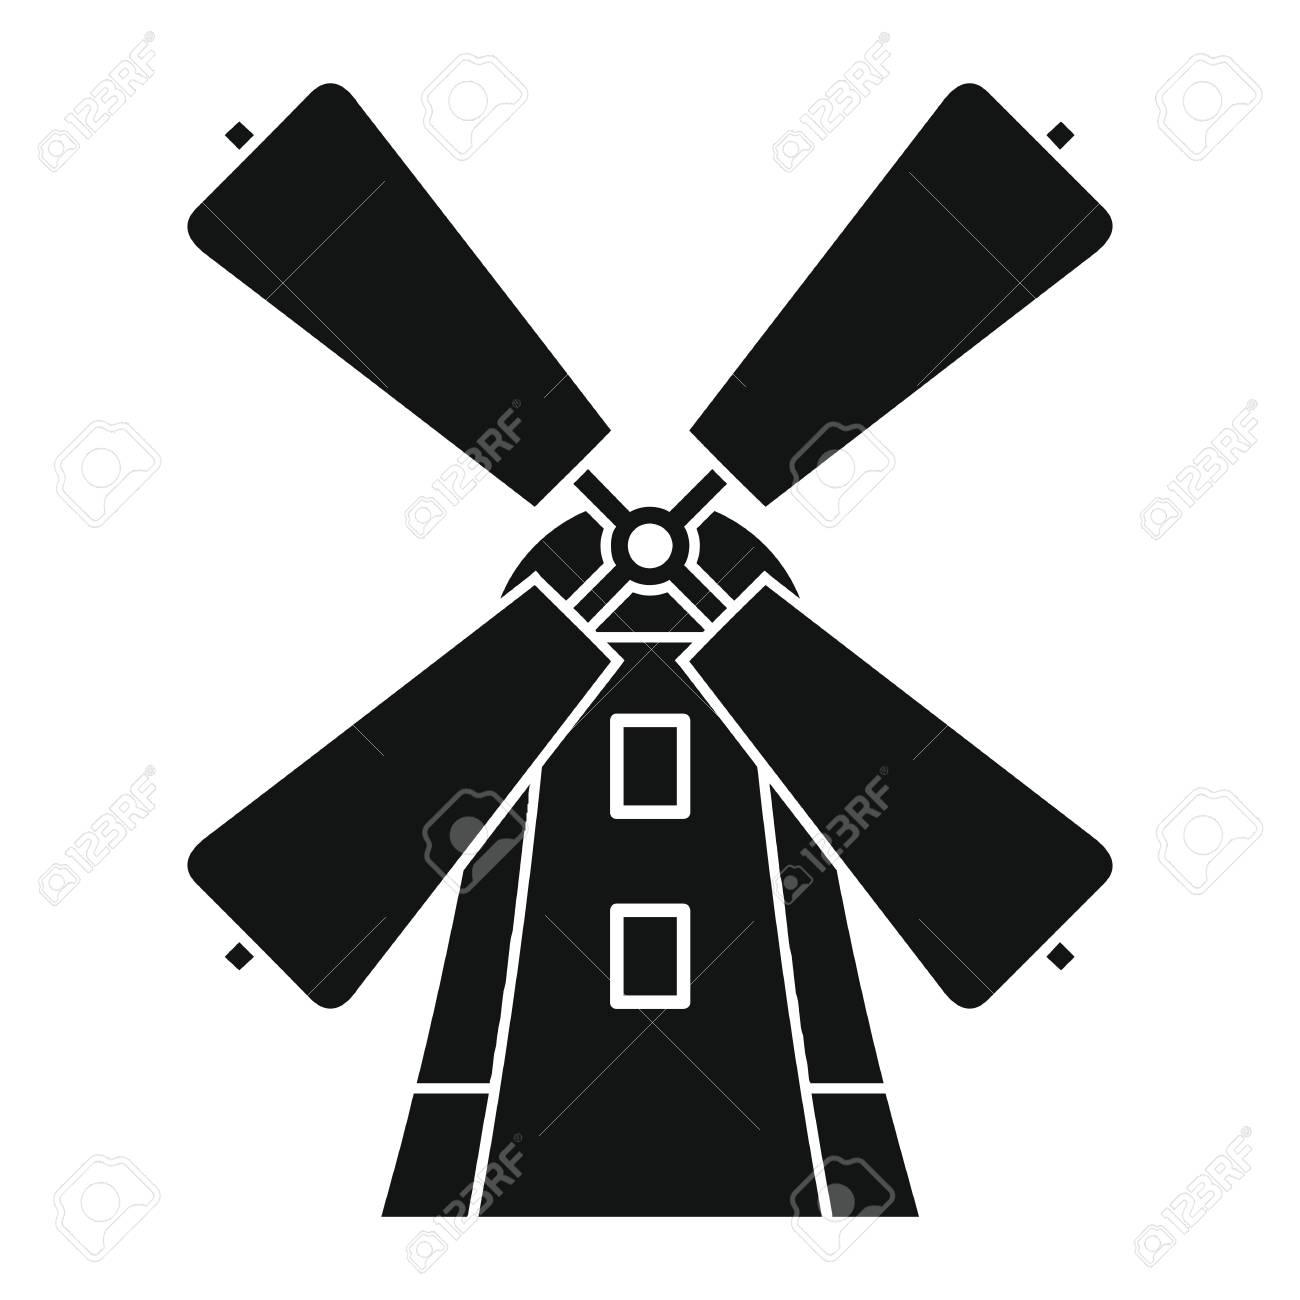 windmill icon in black simple silhouette style vector illustration rh 123rf com windmill vector free download windmill vector download